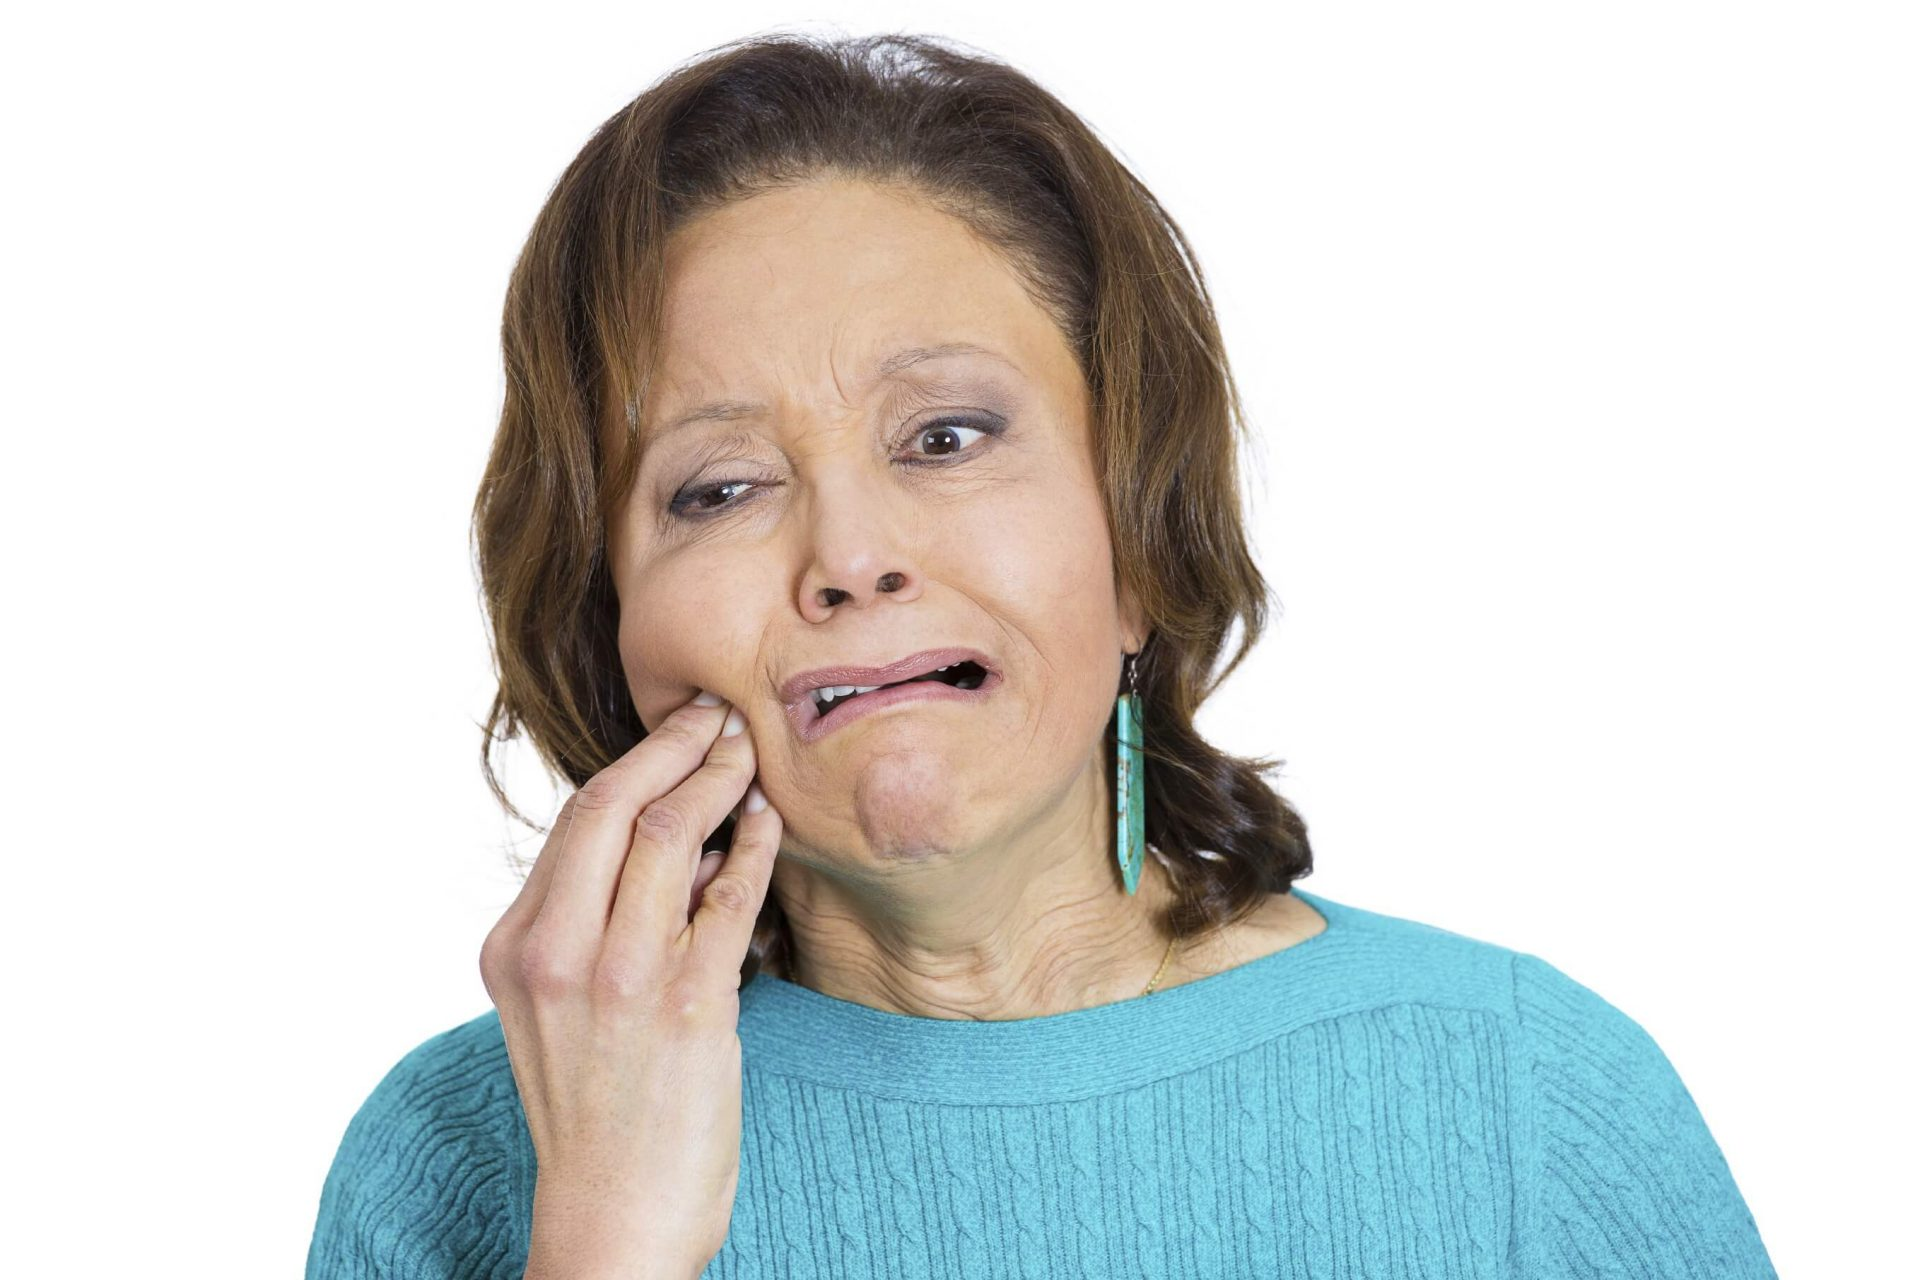 Closeup portrait, elderly business woman with tooth ache, crown problem, cavity pain, touching outside mouth with hand, isolated white background. Negative human emotion facial expression feeling